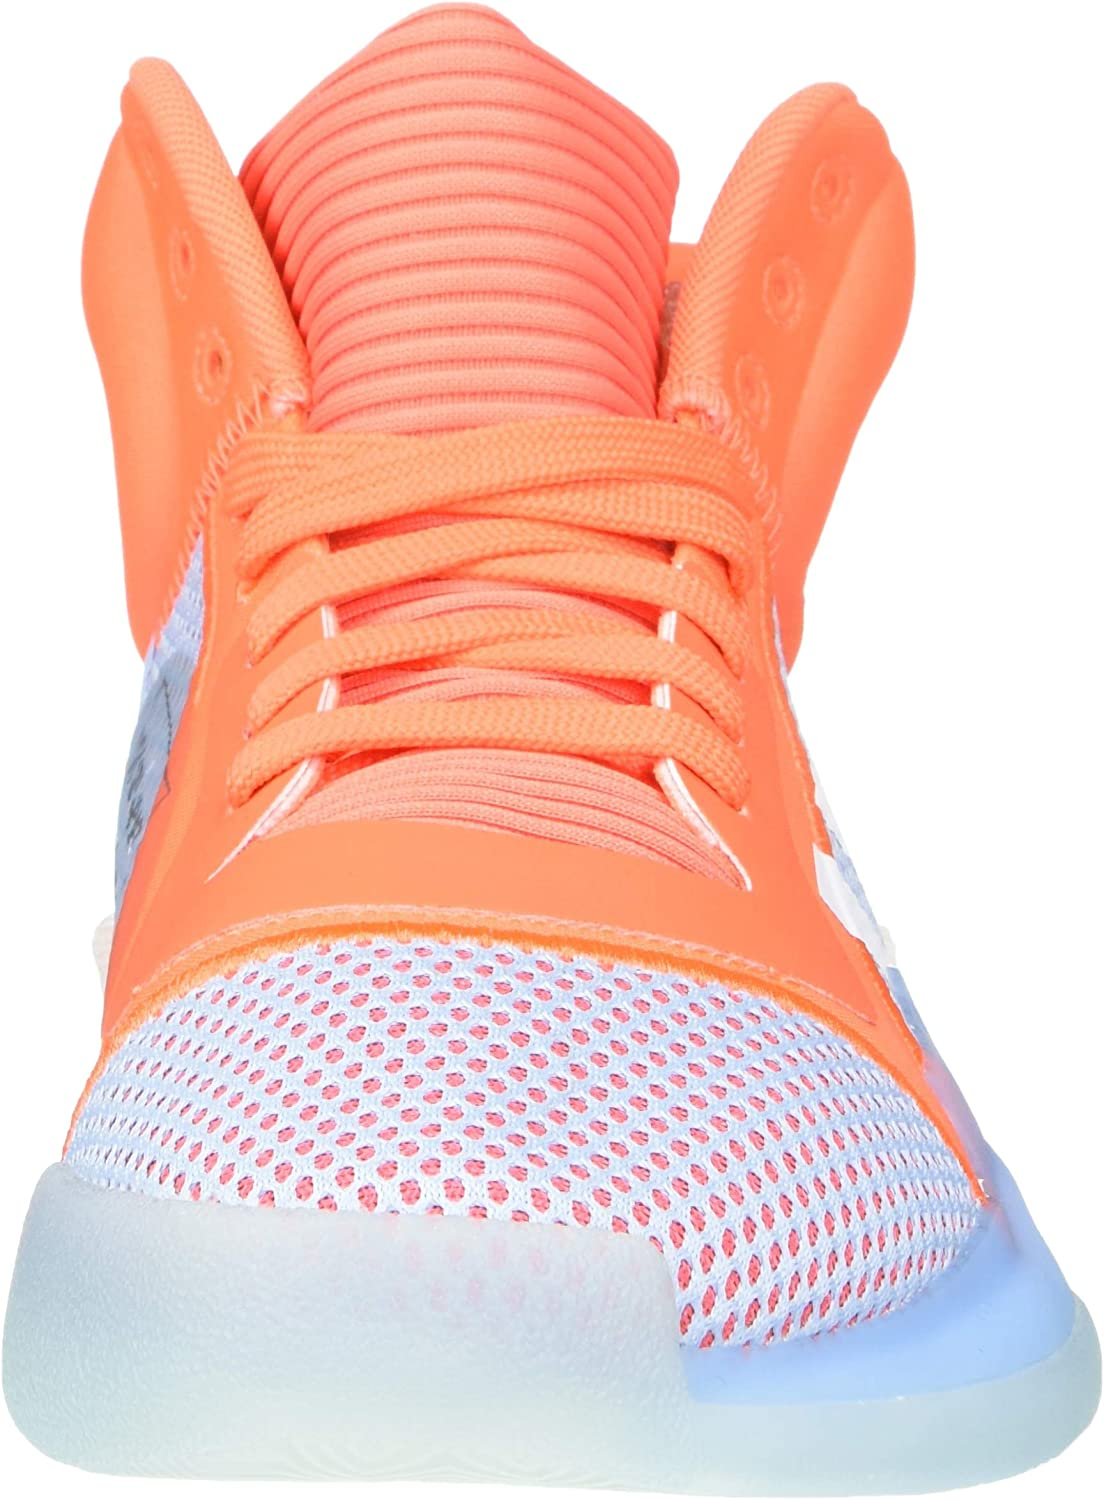 adidas - Marquee Boost Homme Hi-res Coral/White/Glow Blue